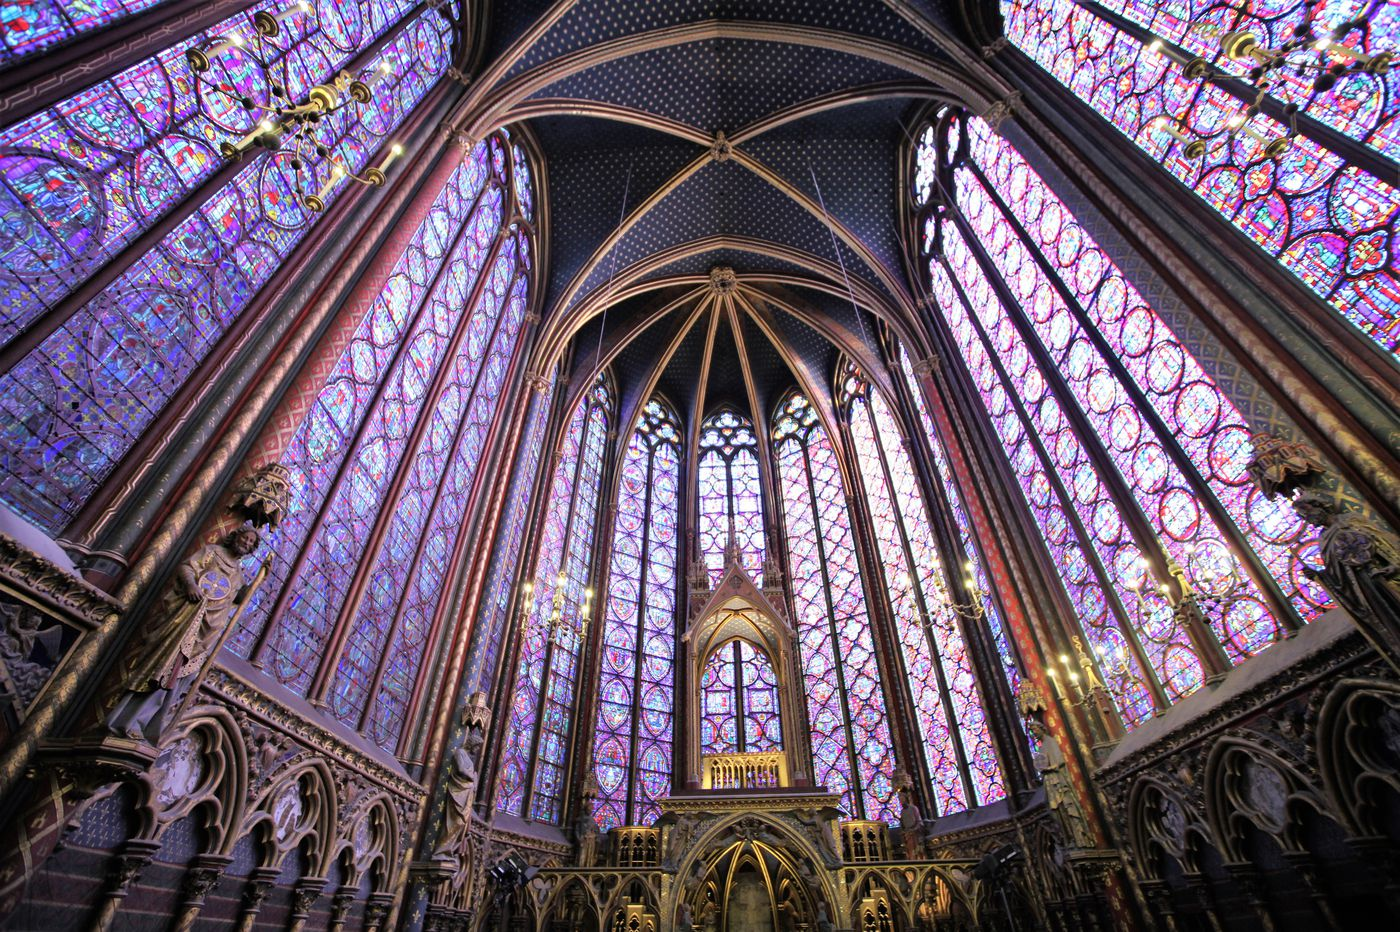 In Paris, tourists can find solace in magnificent churches other than fire-ravaged Notre Dame